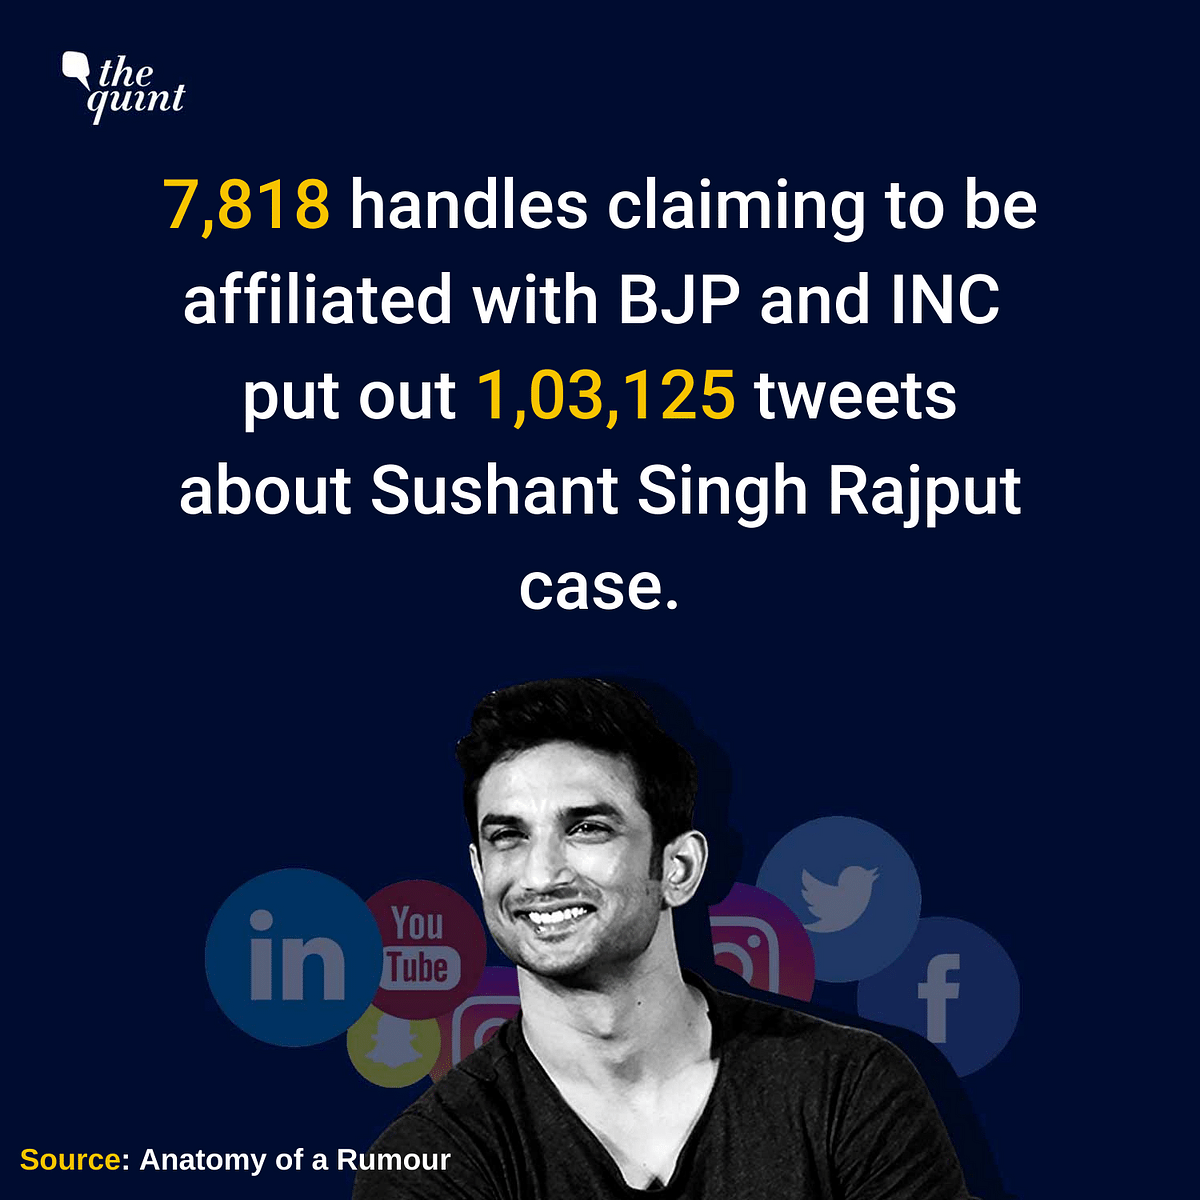 """Information source: <a href=""""http://joyojeet.people.si.umich.edu/ssr/"""">Anatomy of a Rumour: Social media and the suicide of Sushant Singh Rajput</a>"""